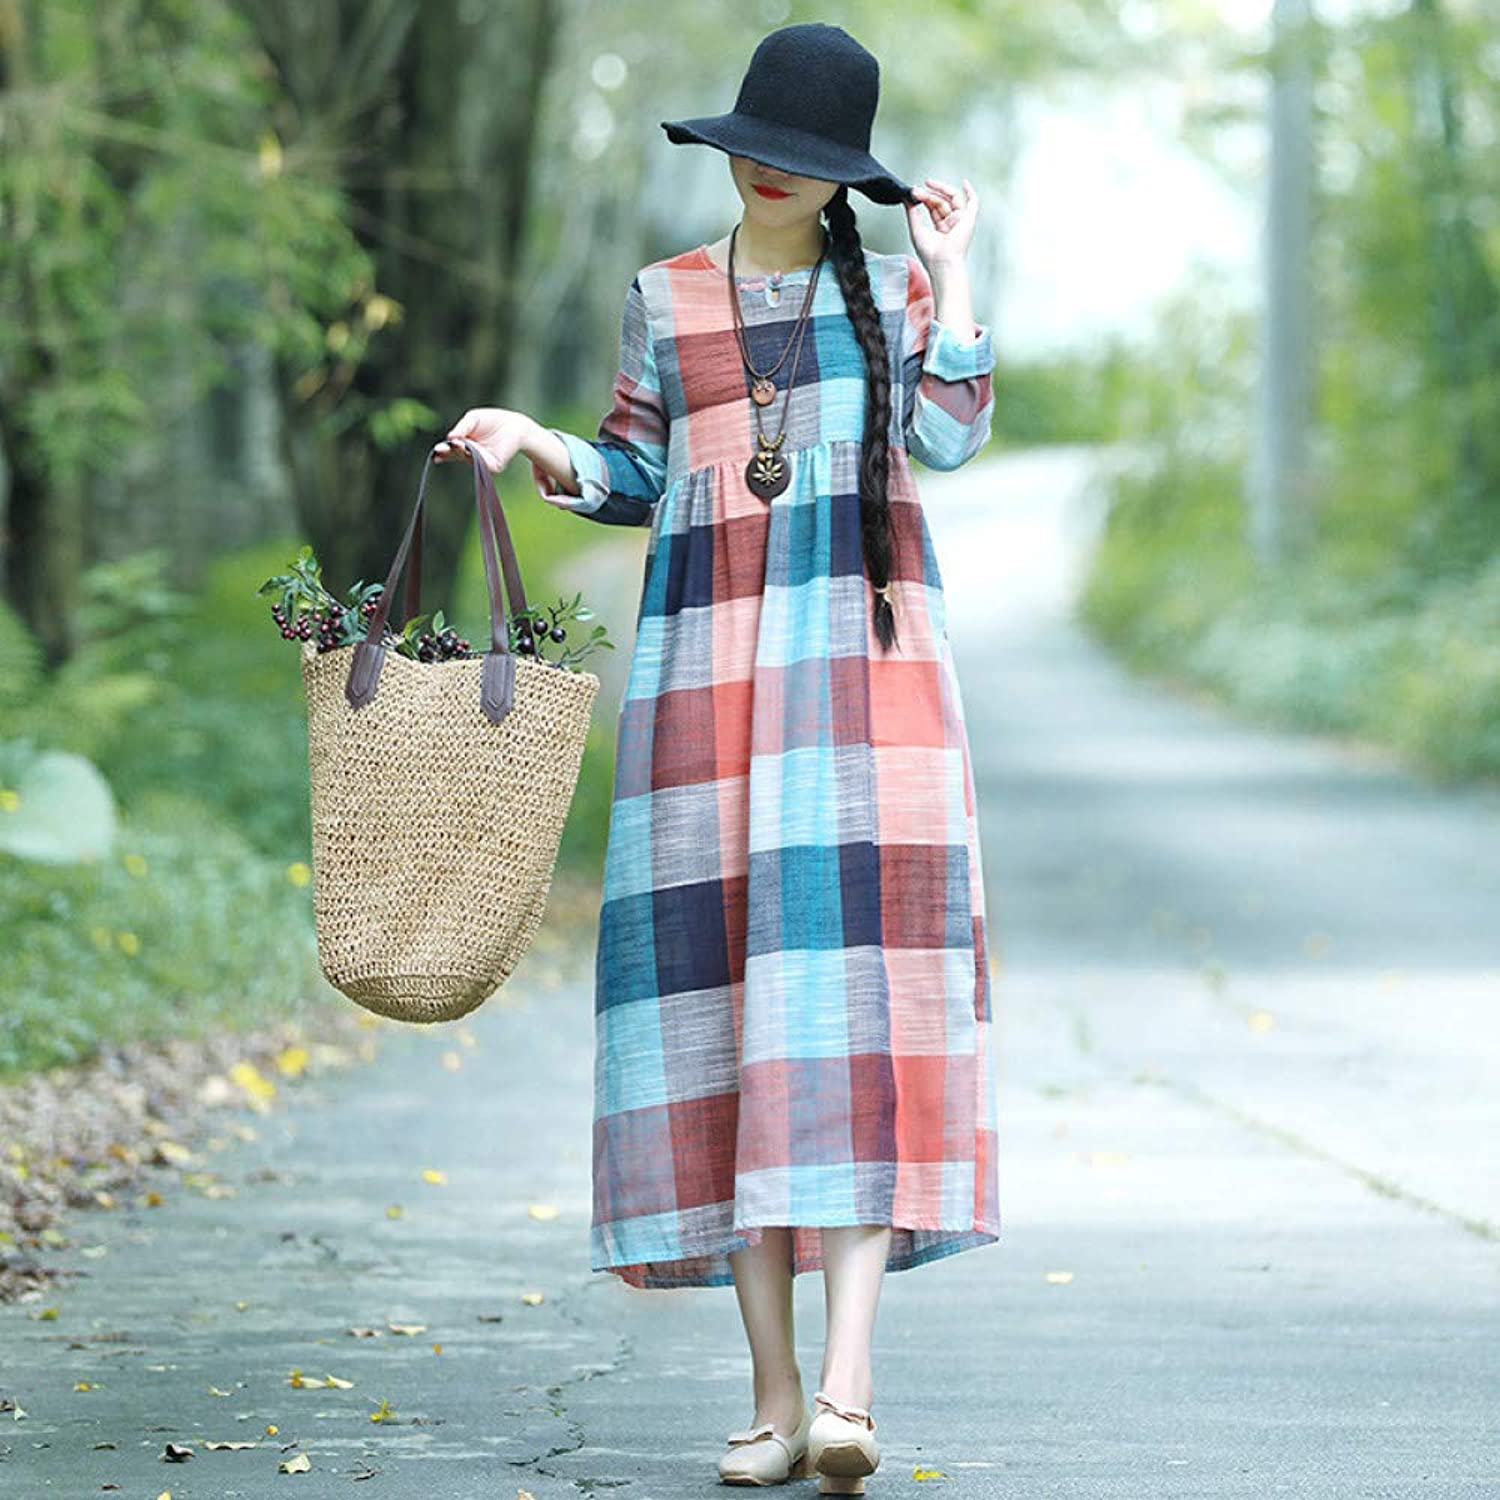 Cxlyq Dresses Early Autumn Cotton and Linen Dress Loose Slim Plaid Word Buckle Dress